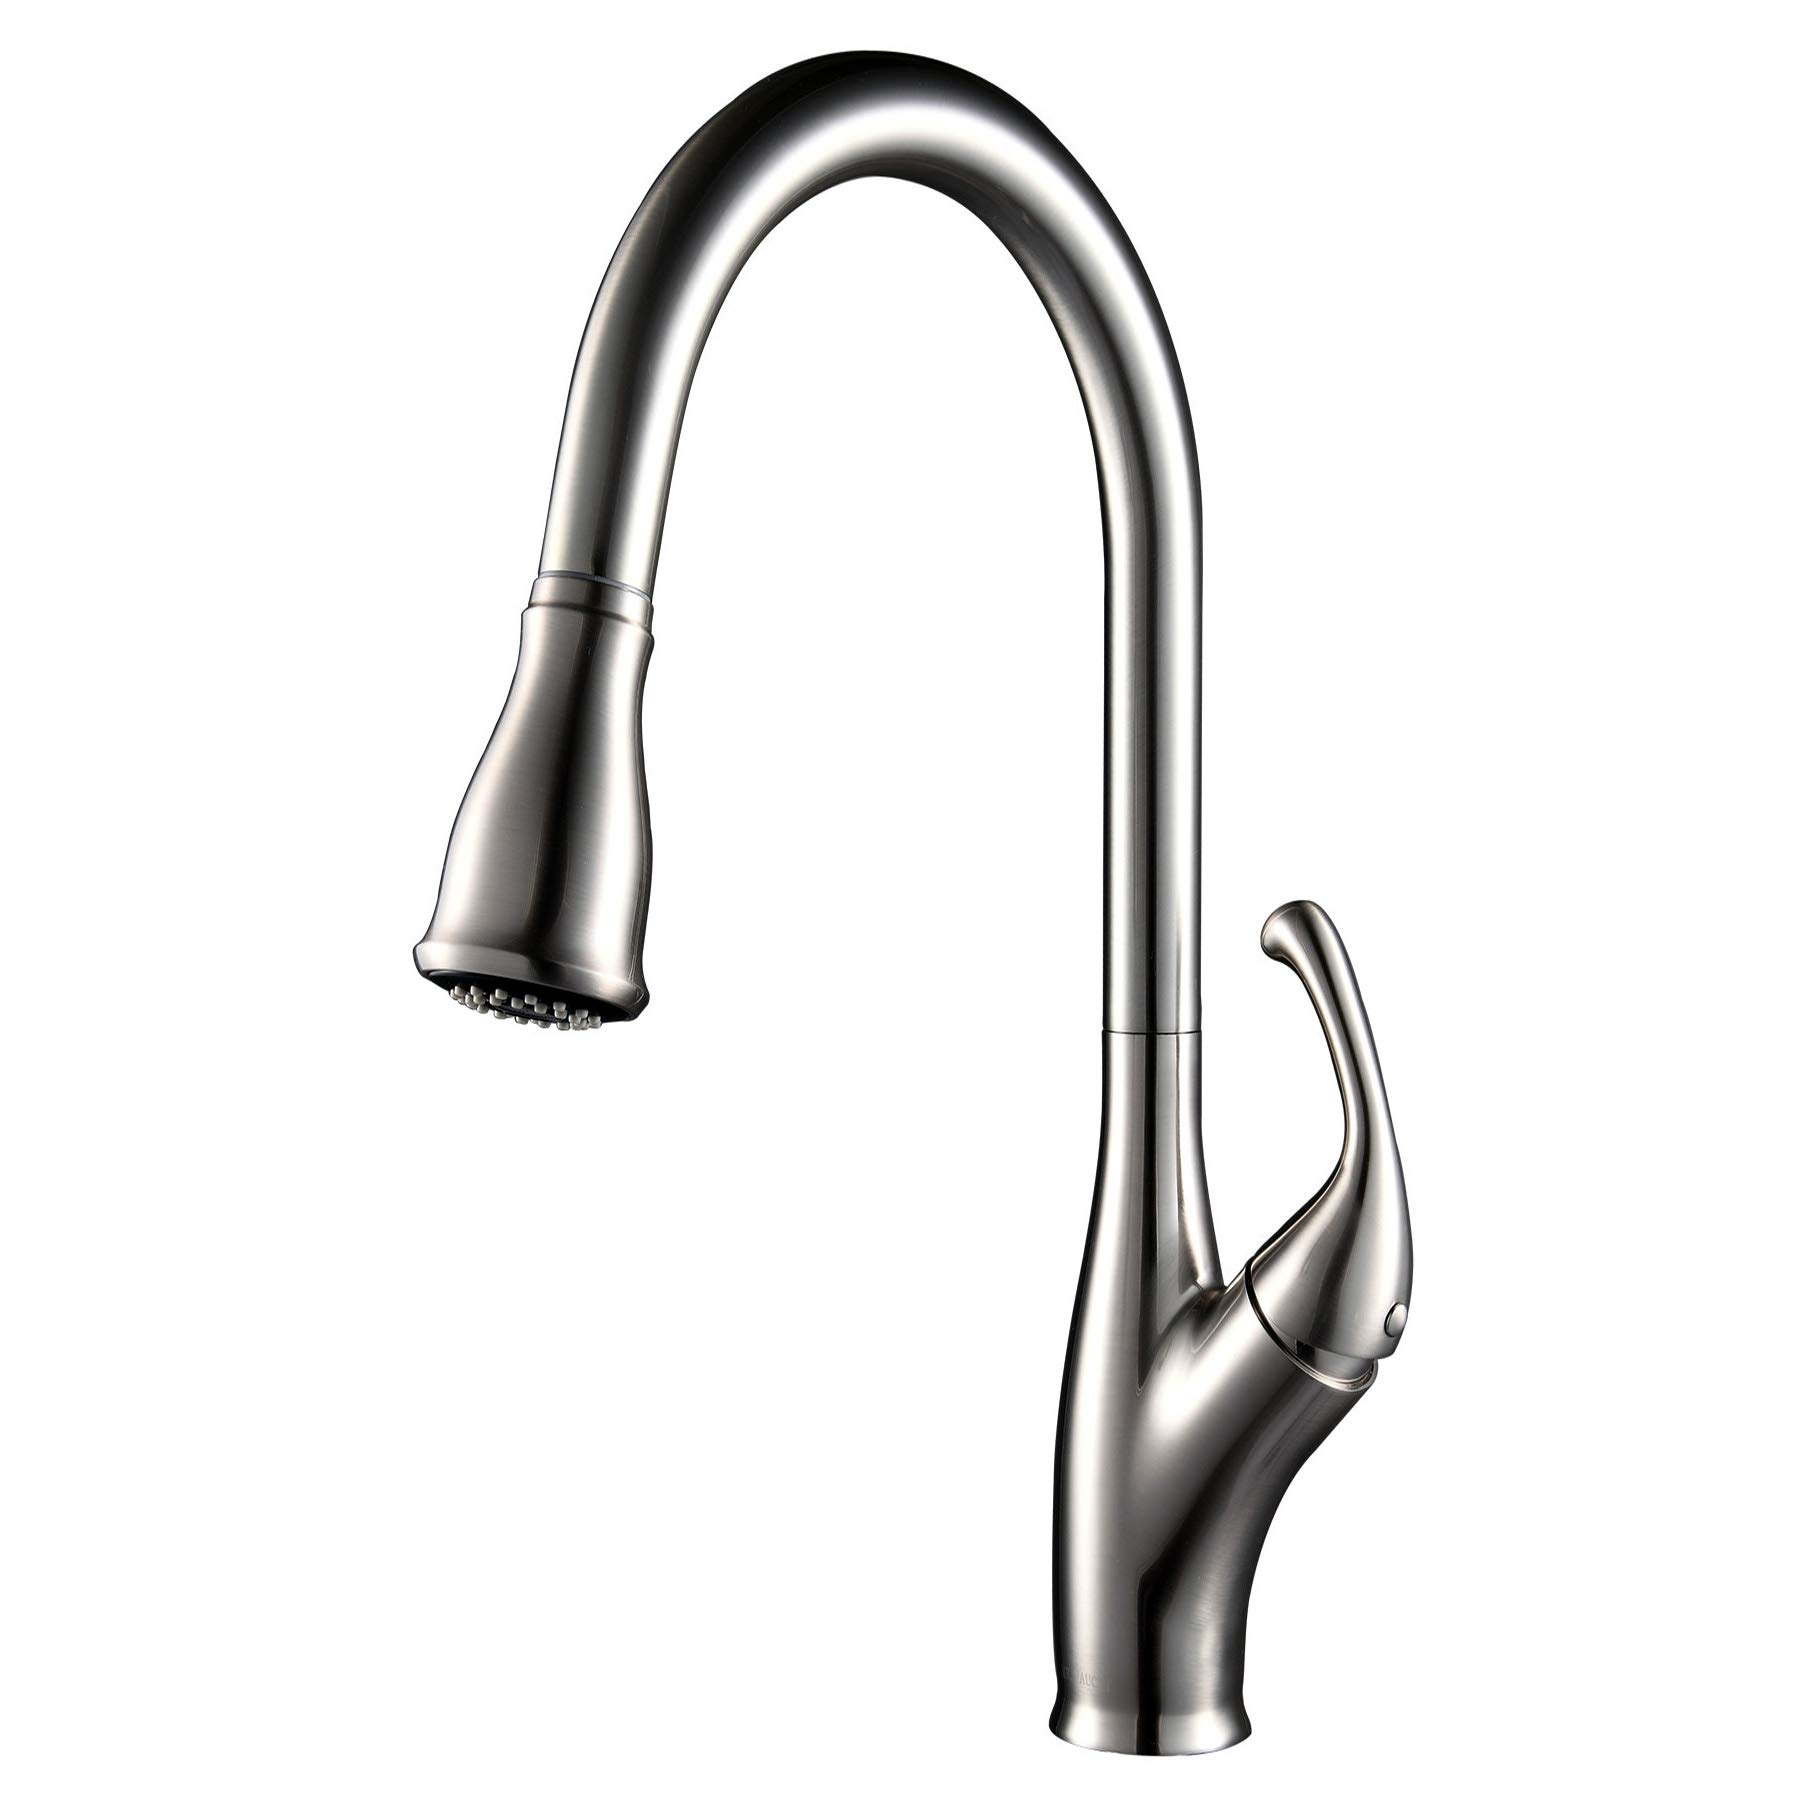 Single Handle Kitchen Sink Faucet with 2 Function Pull Down Spray for Deck Bar-Brushed Nickel